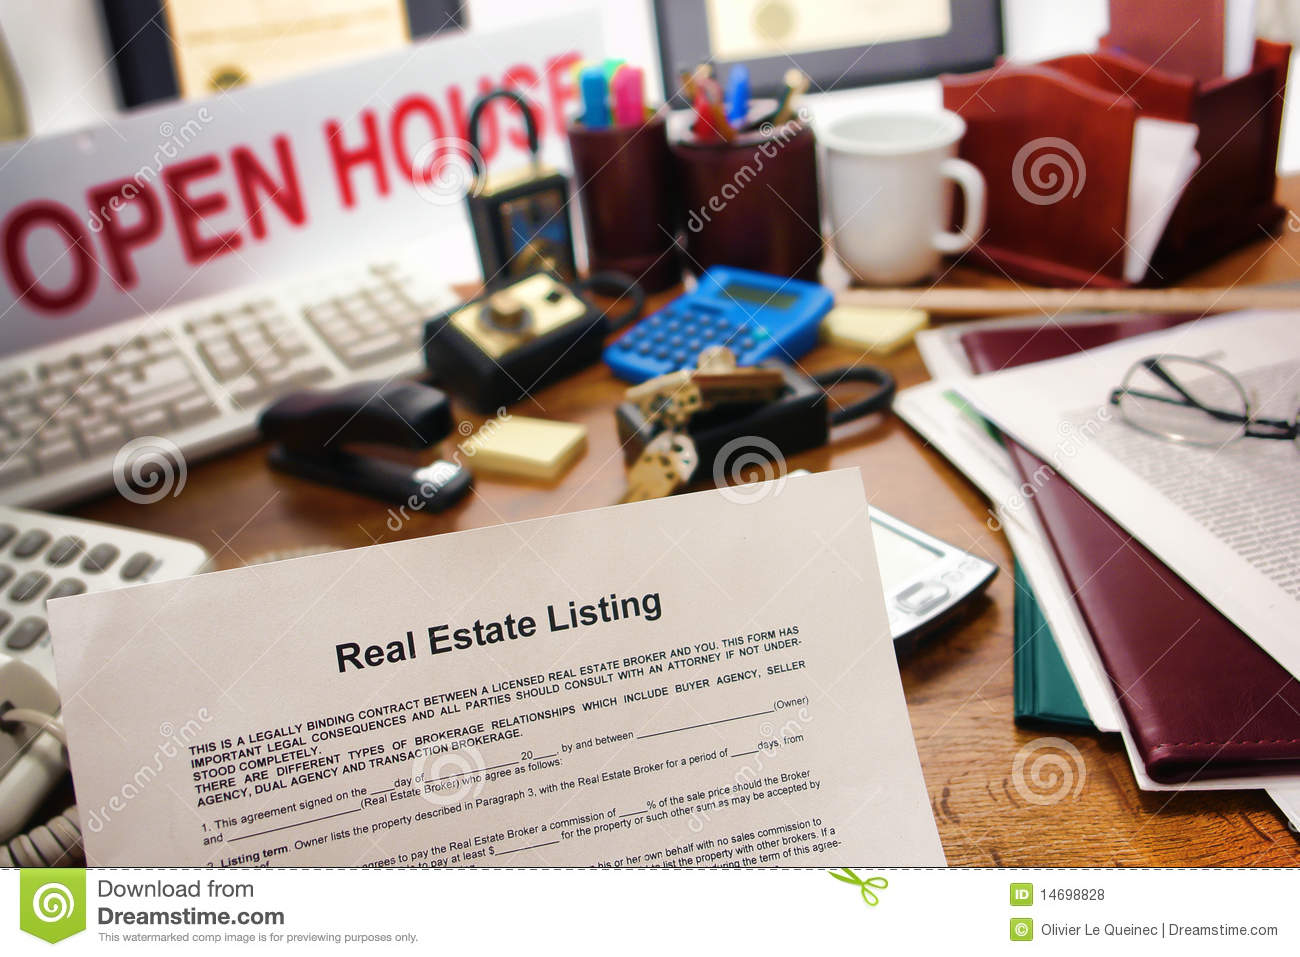 Real Estate Listing Sale Contract on Realtor Desk